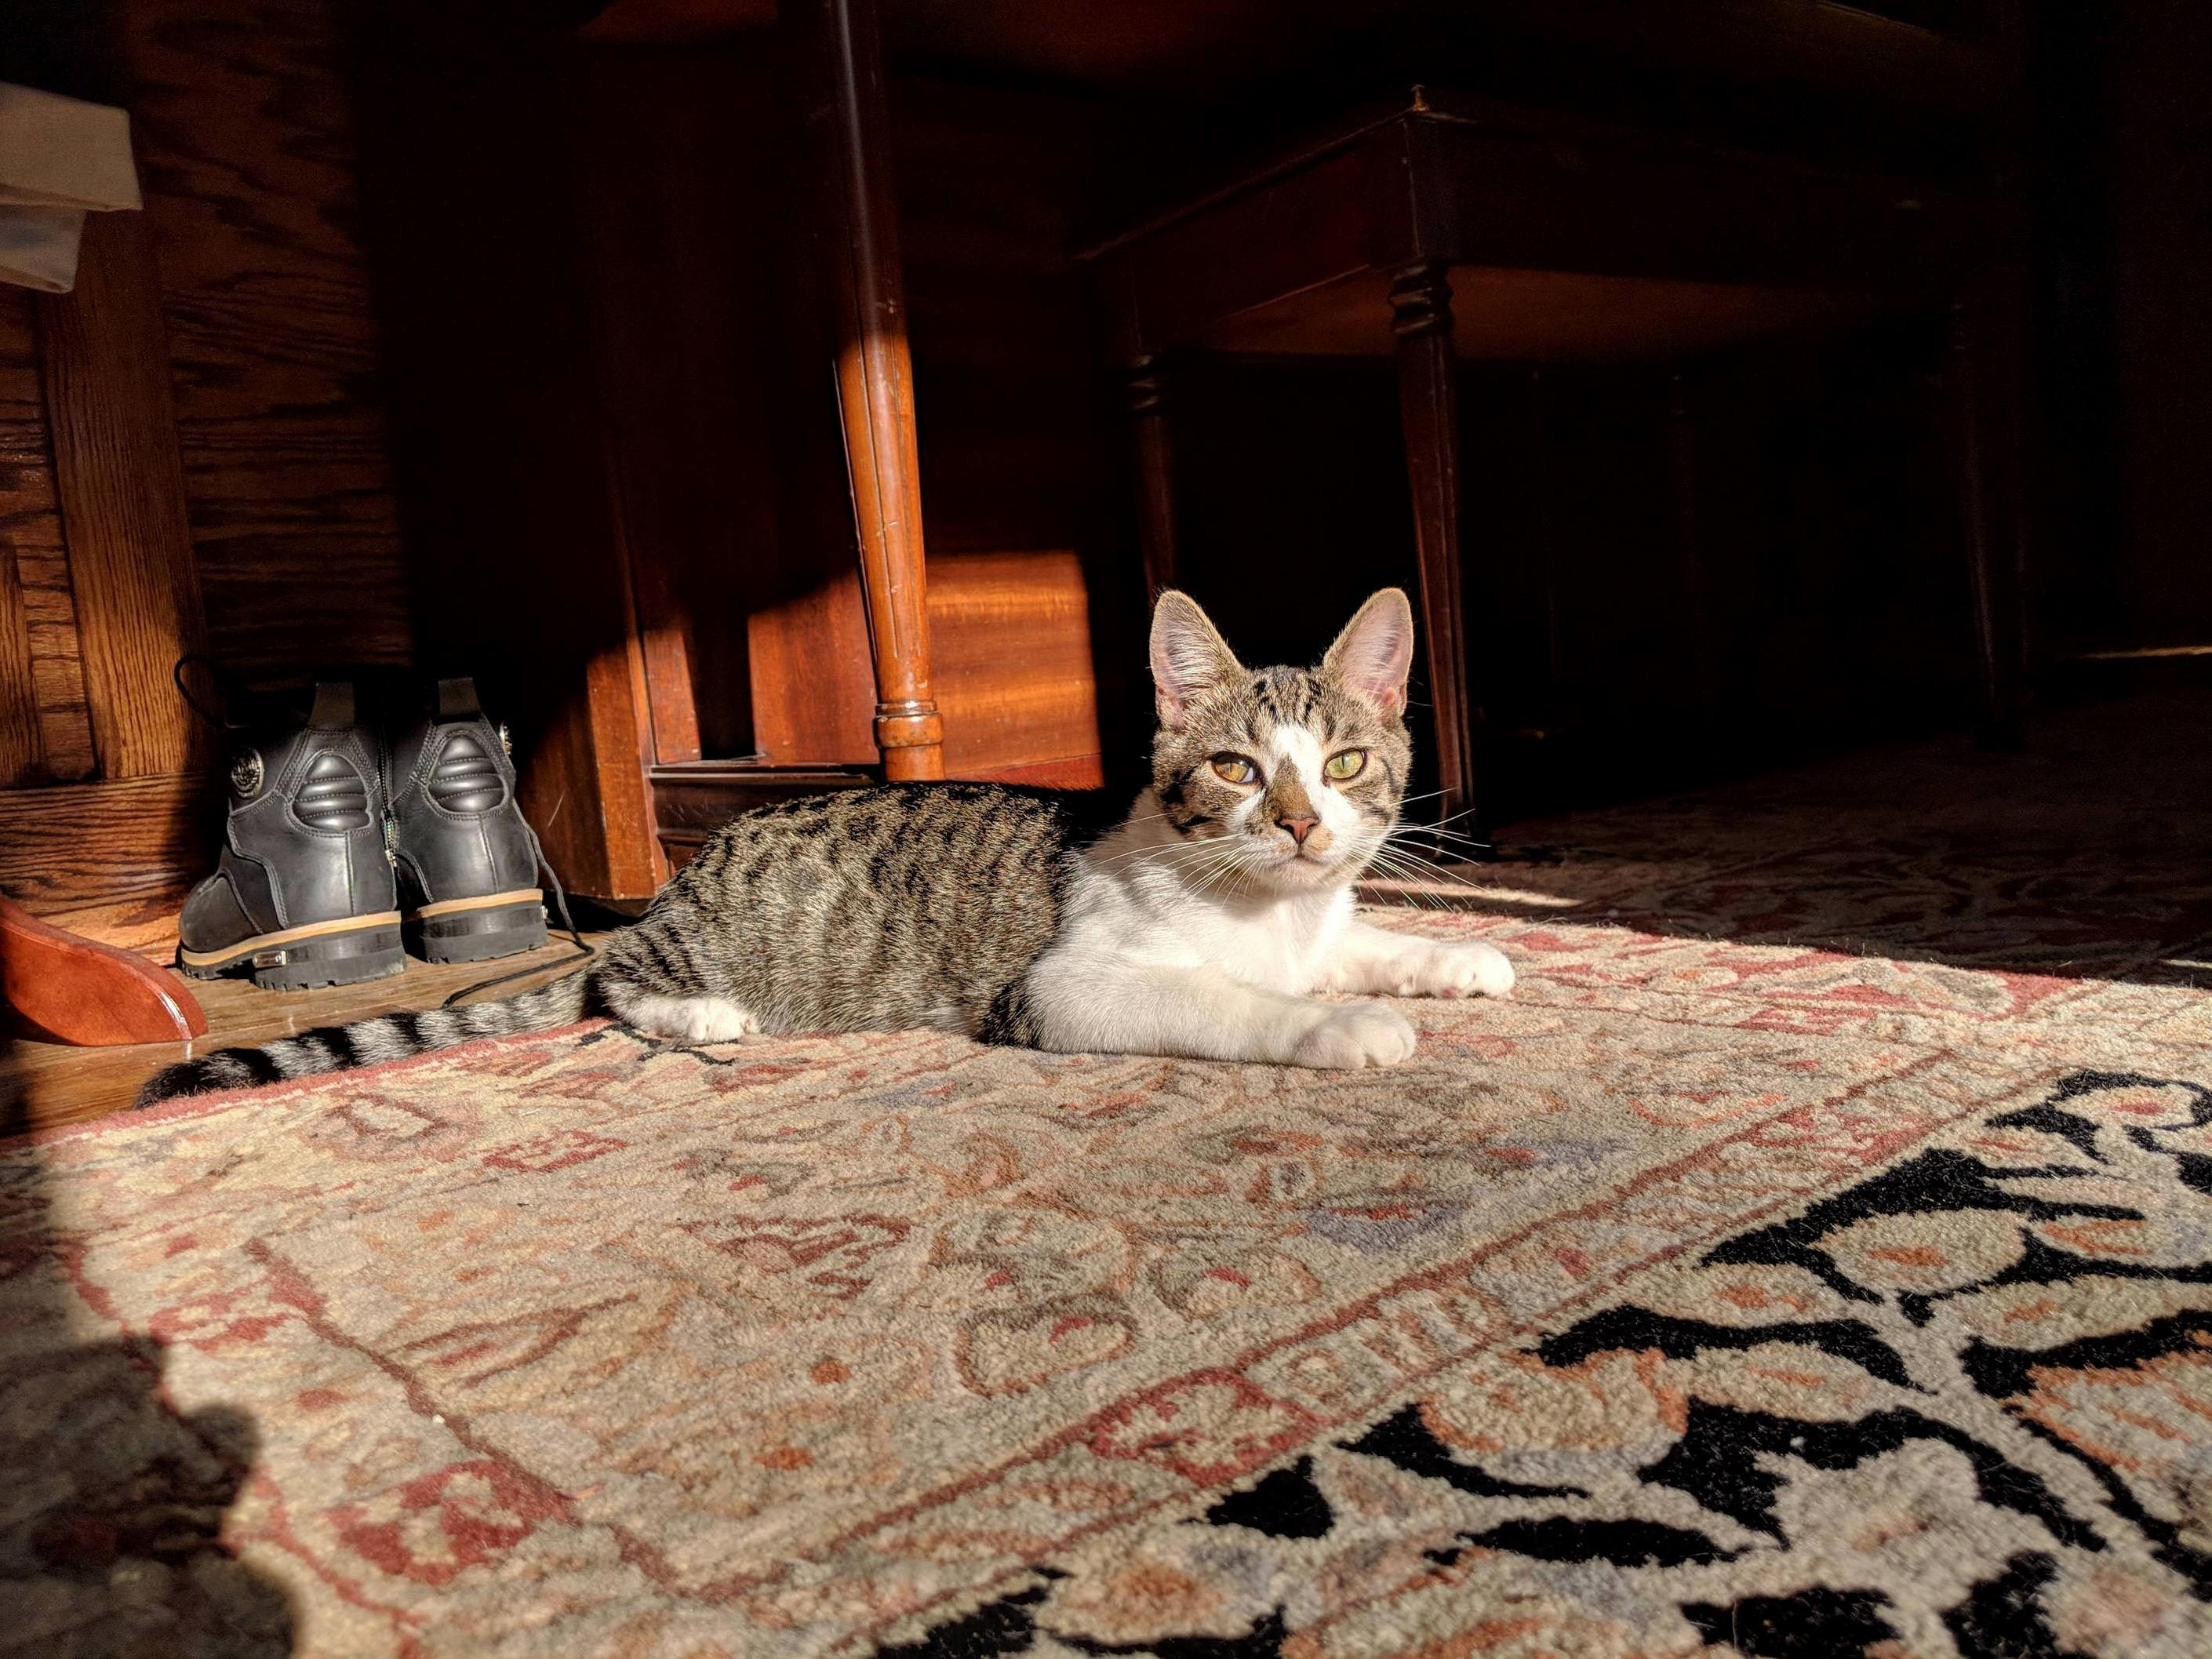 Mouse, soaking up the sun